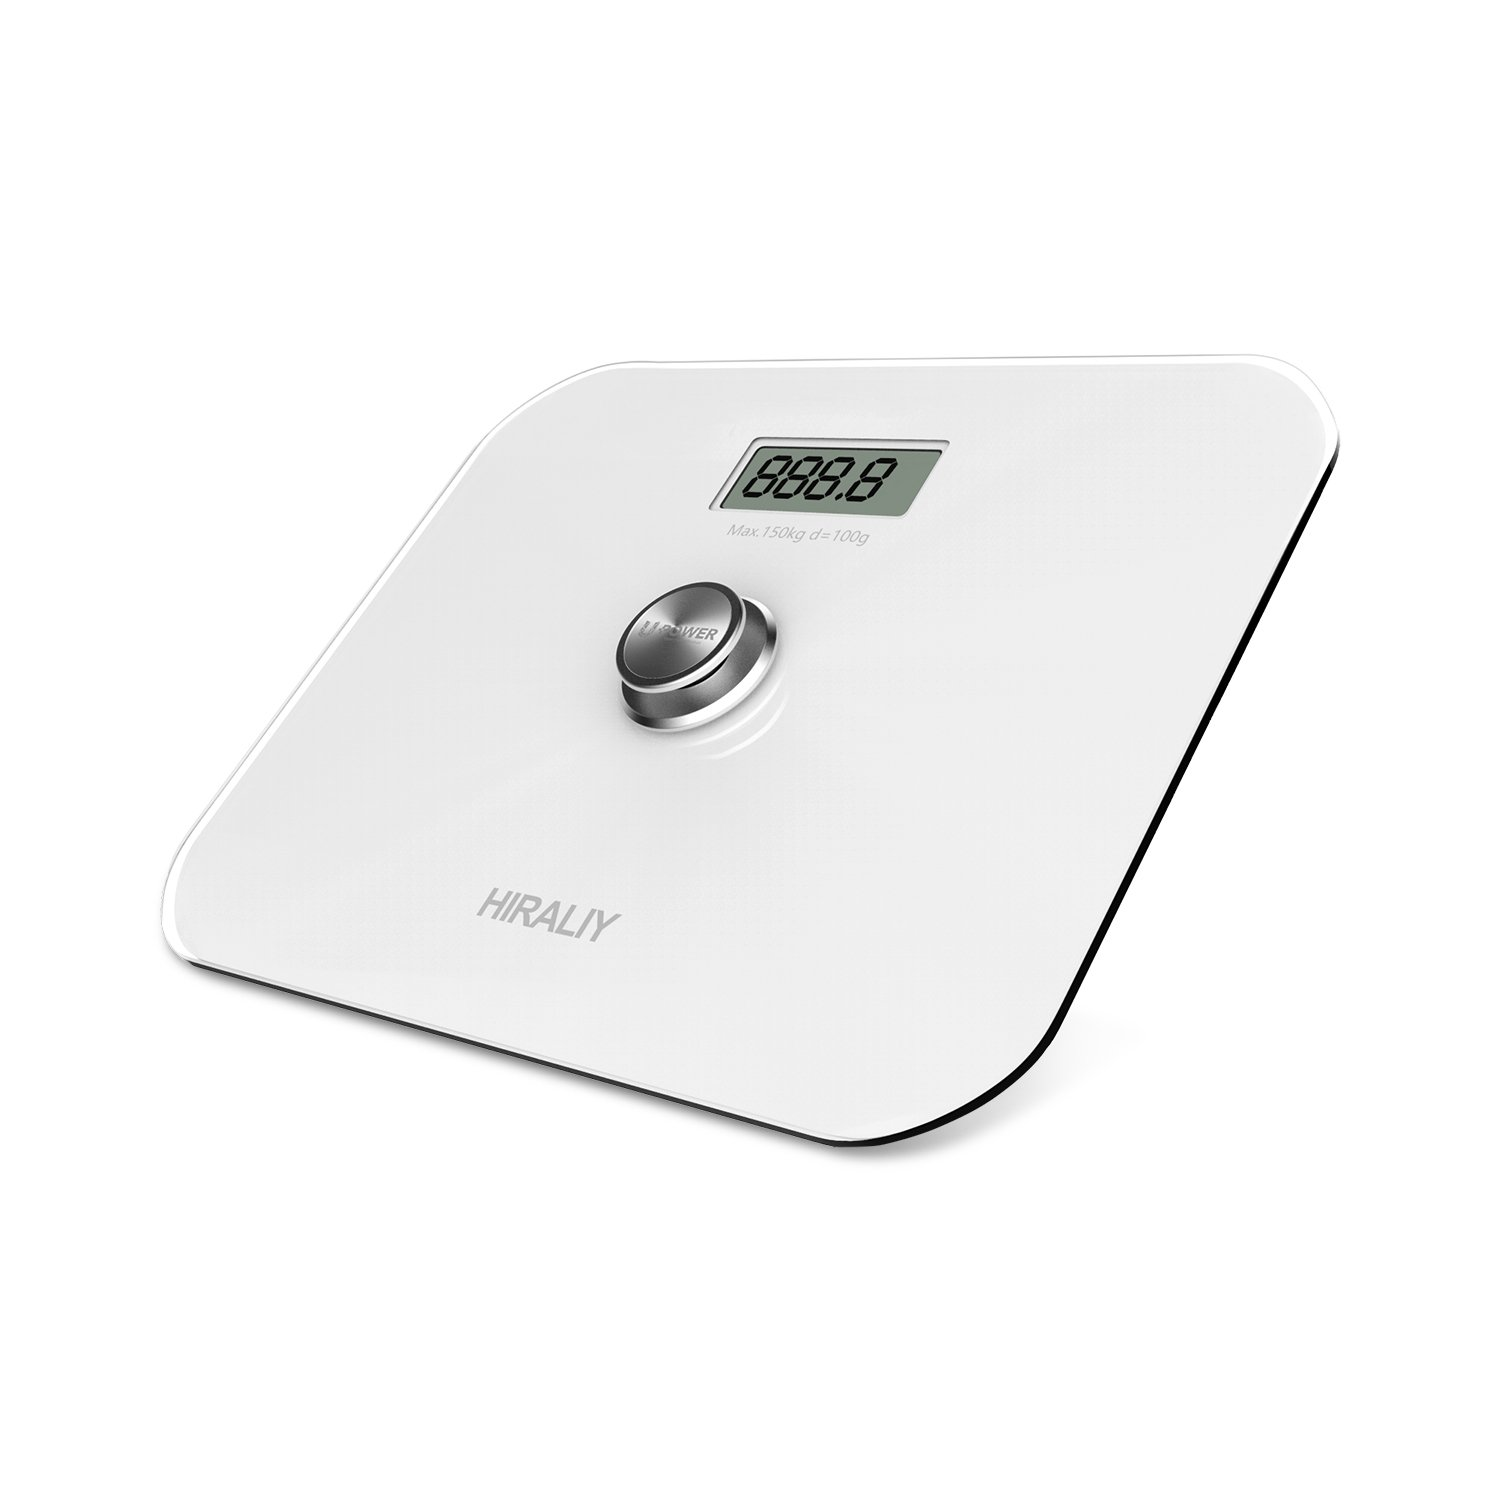 Amazon scale bathroom - Amazon Com Hiraliy Digital Body Weight Bathroom Scale No Batteries Ever With Lcd Display And Step On Technology 330lb 150kg White Health Personal